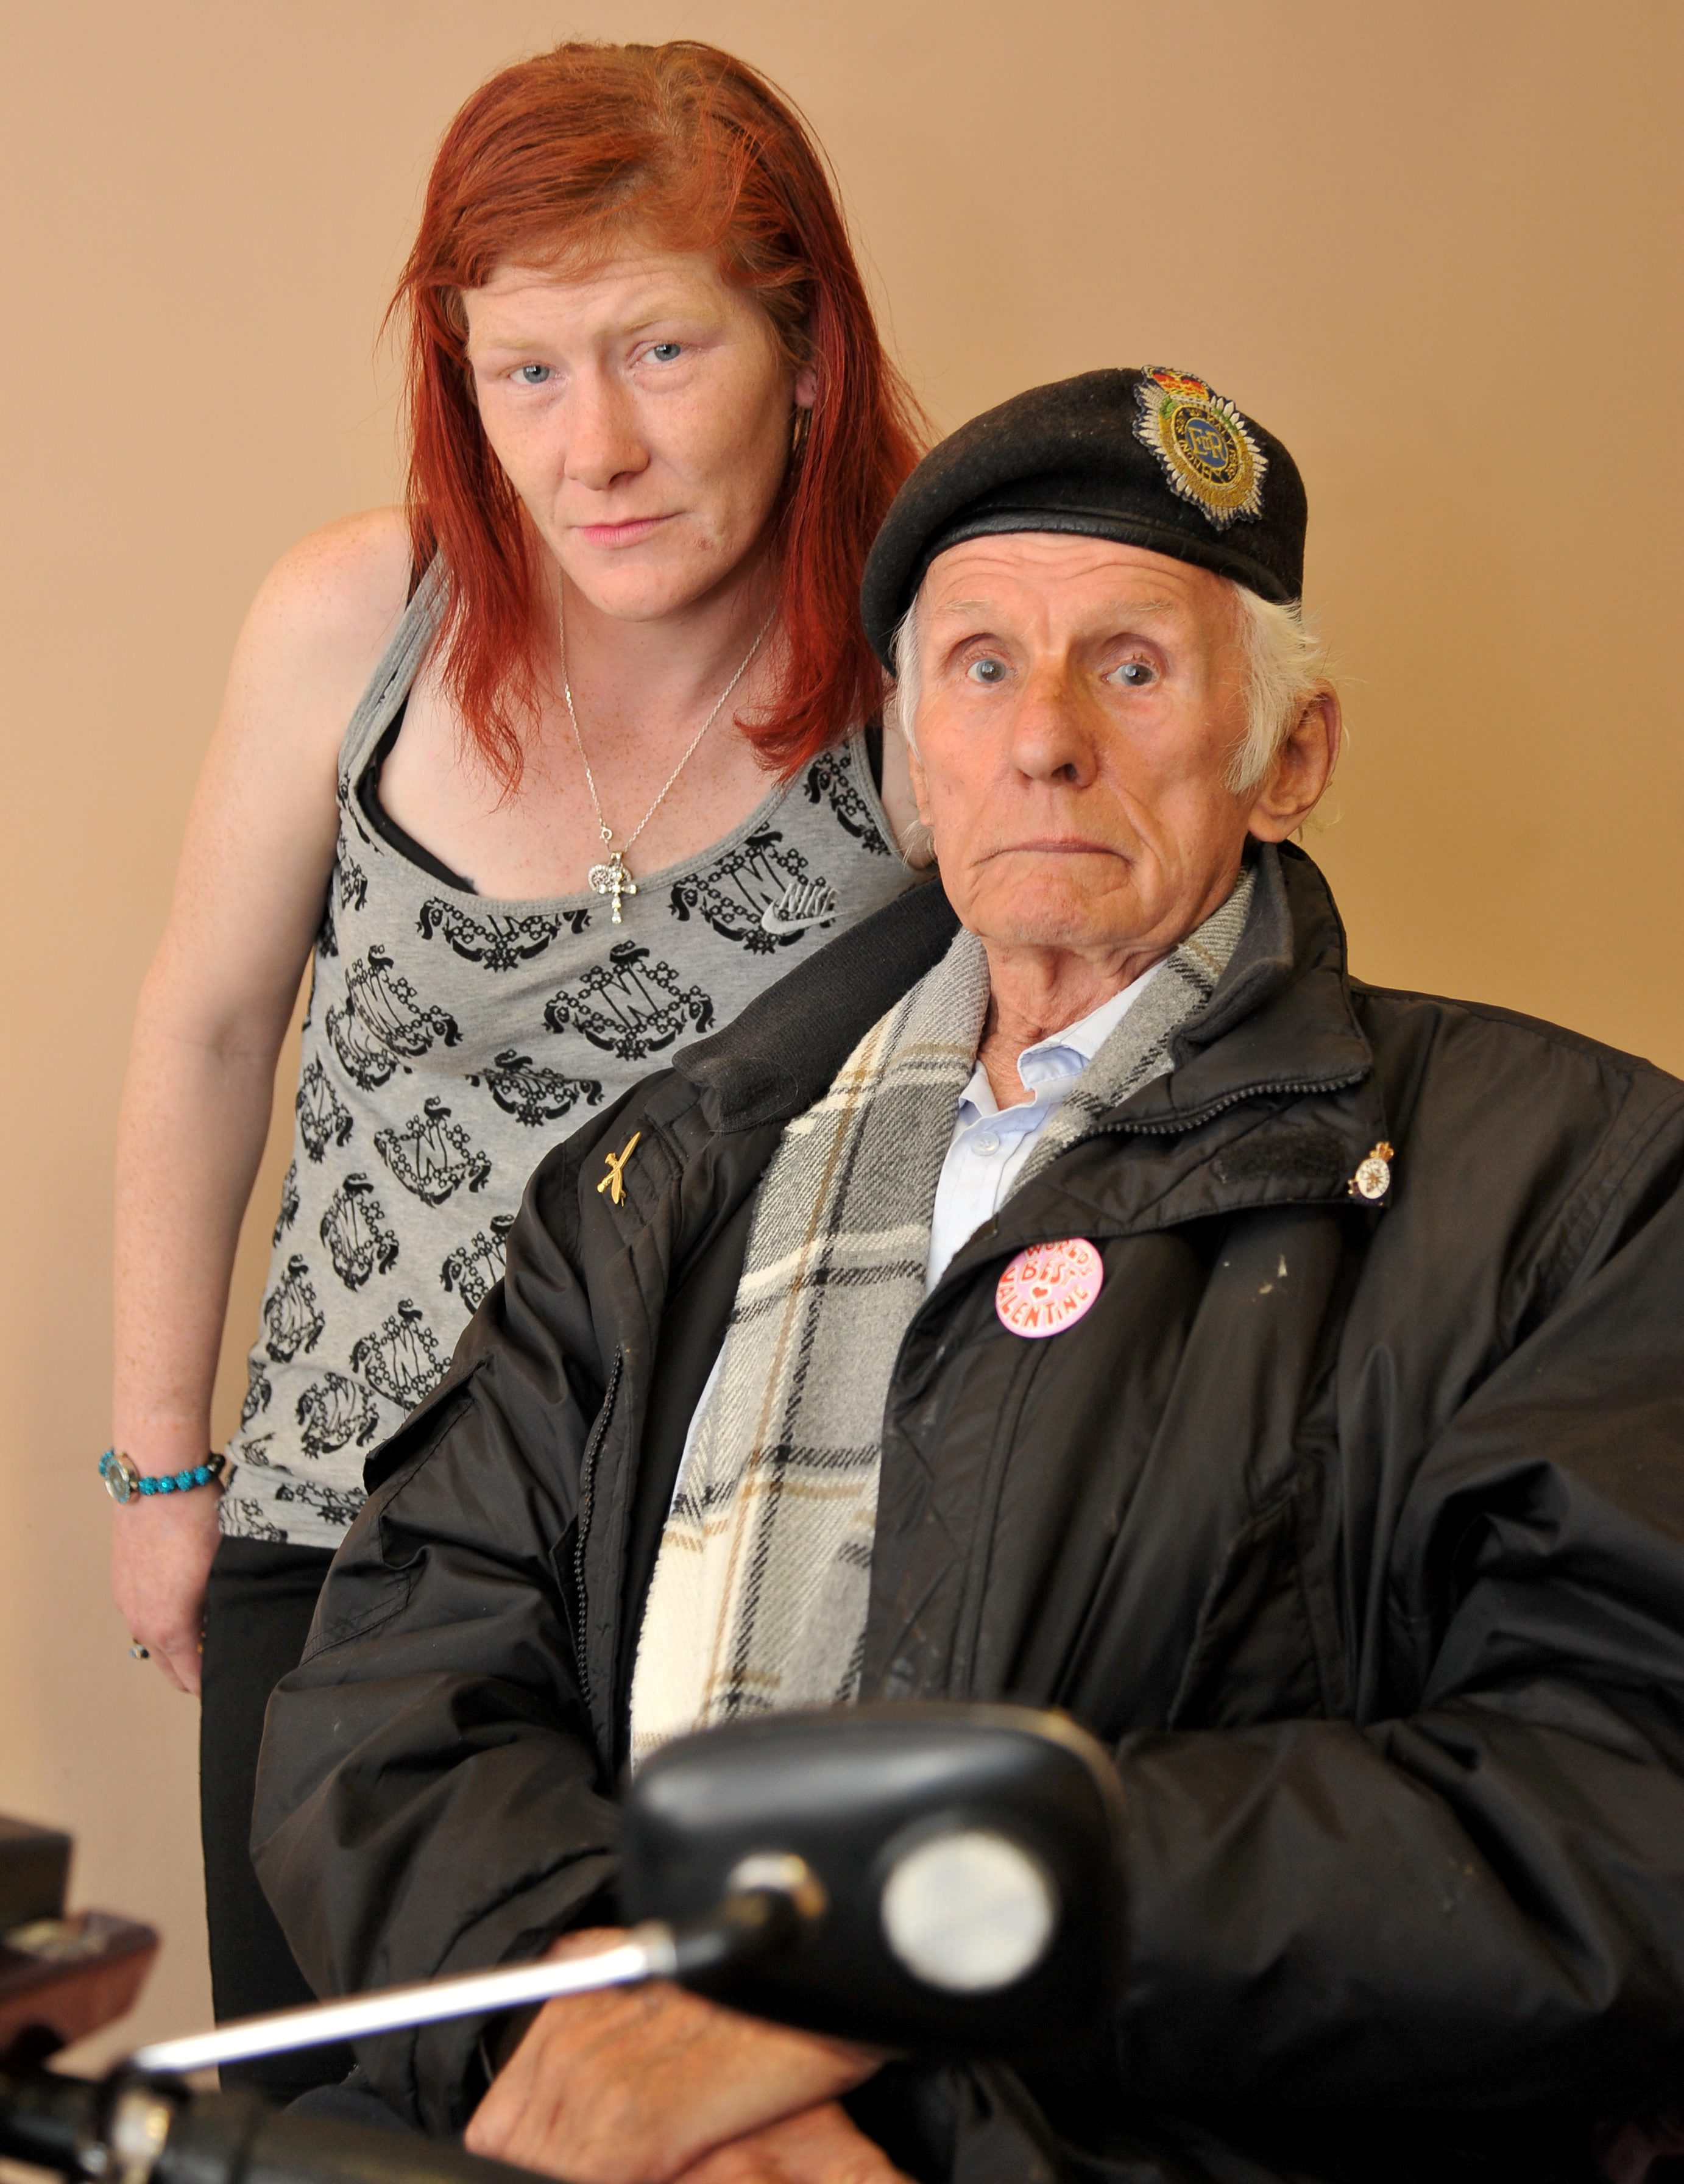 Disabled pensioner, 88, in court for punching council official who banned him from seeing prostitute